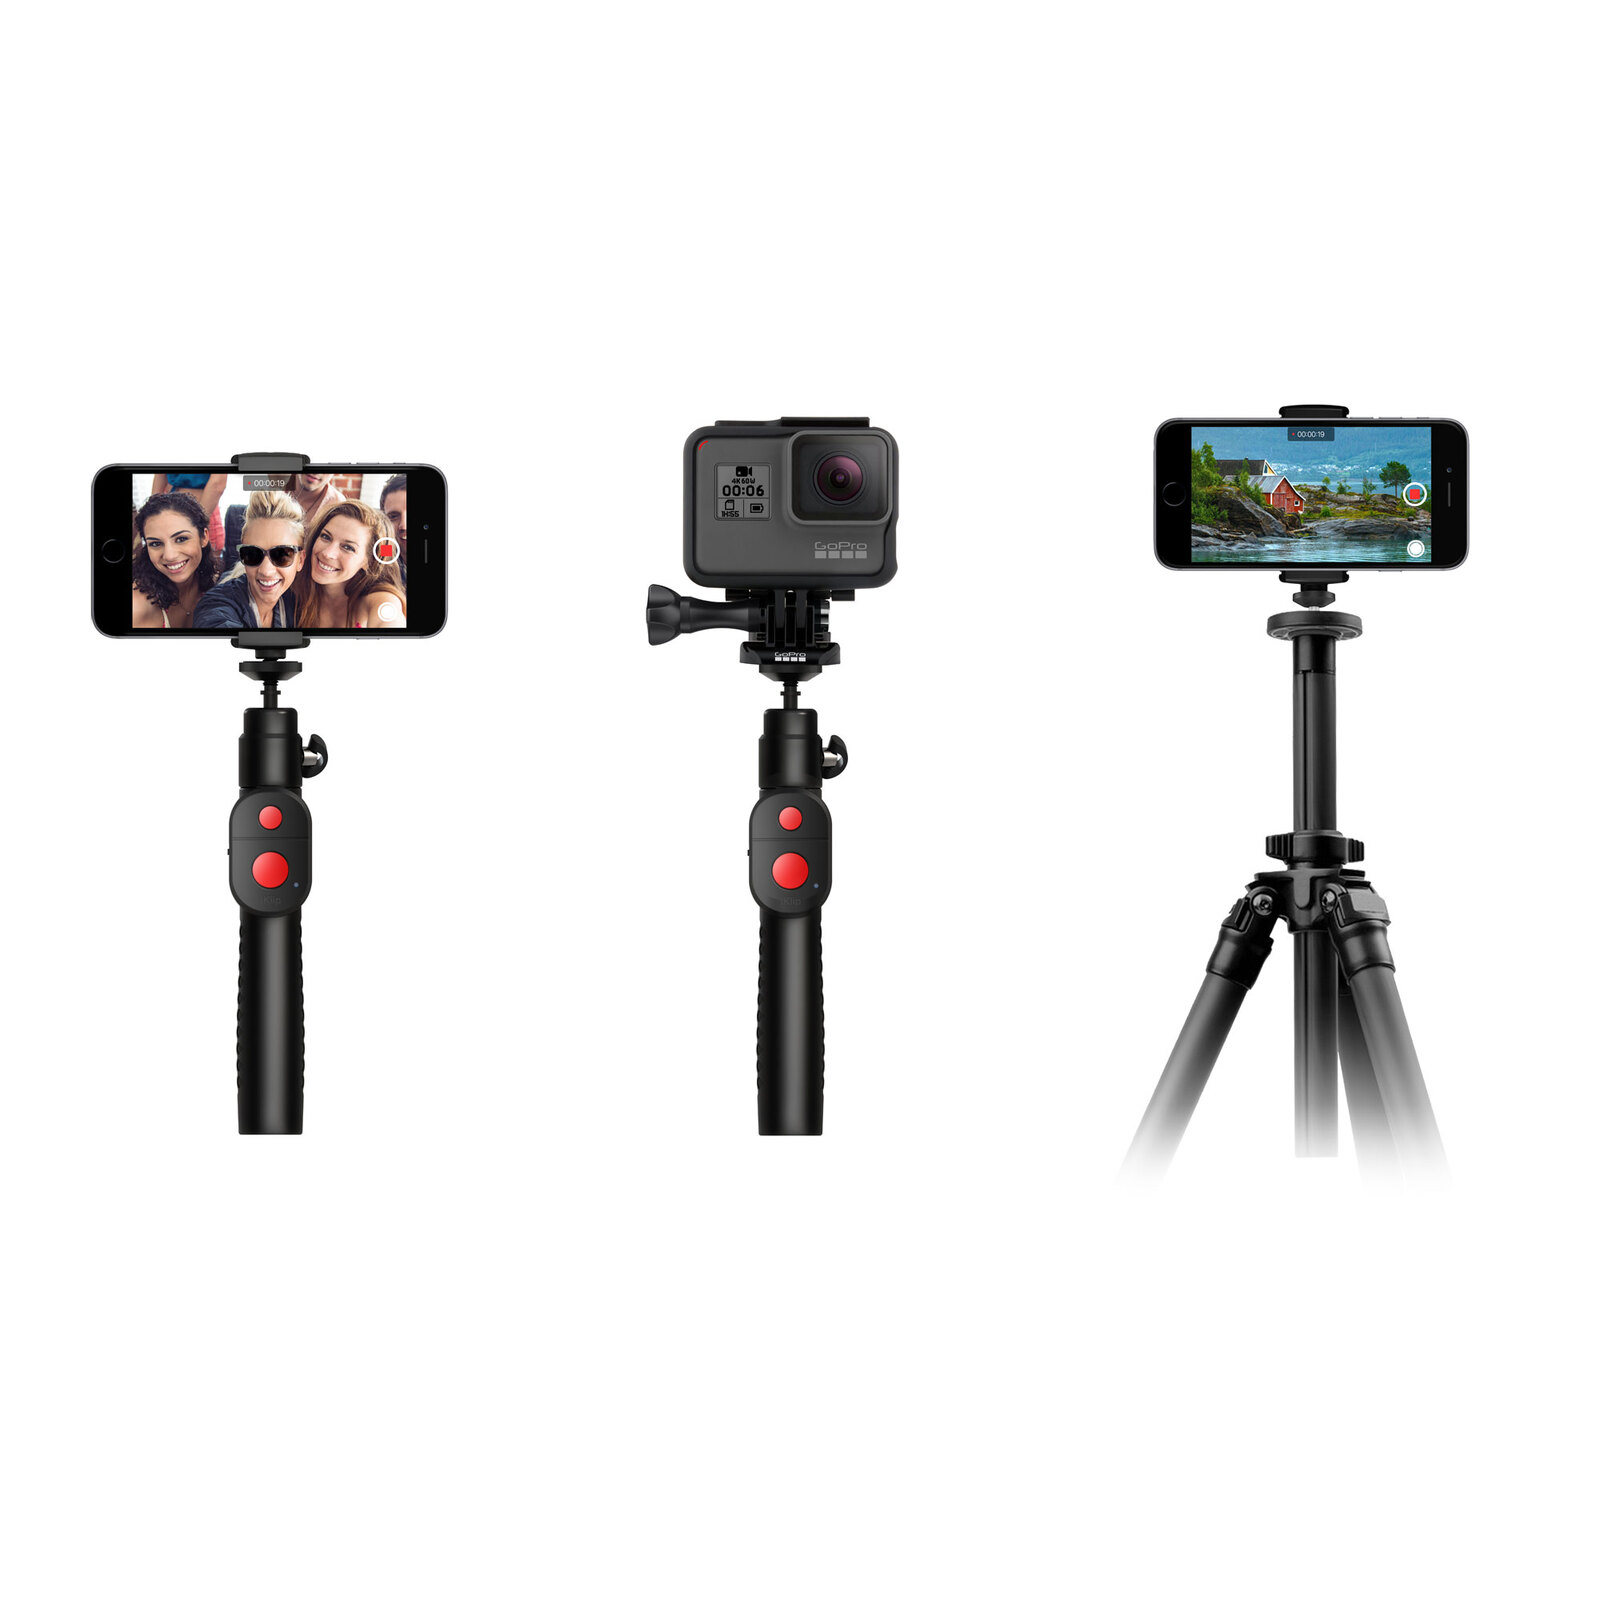 iRIG iKLIP GO MULTIFUNCTIONAL SMARTPHONESTAND AND SELFIE STICK W/ BLUETOOTH SHUTTER CONTROL